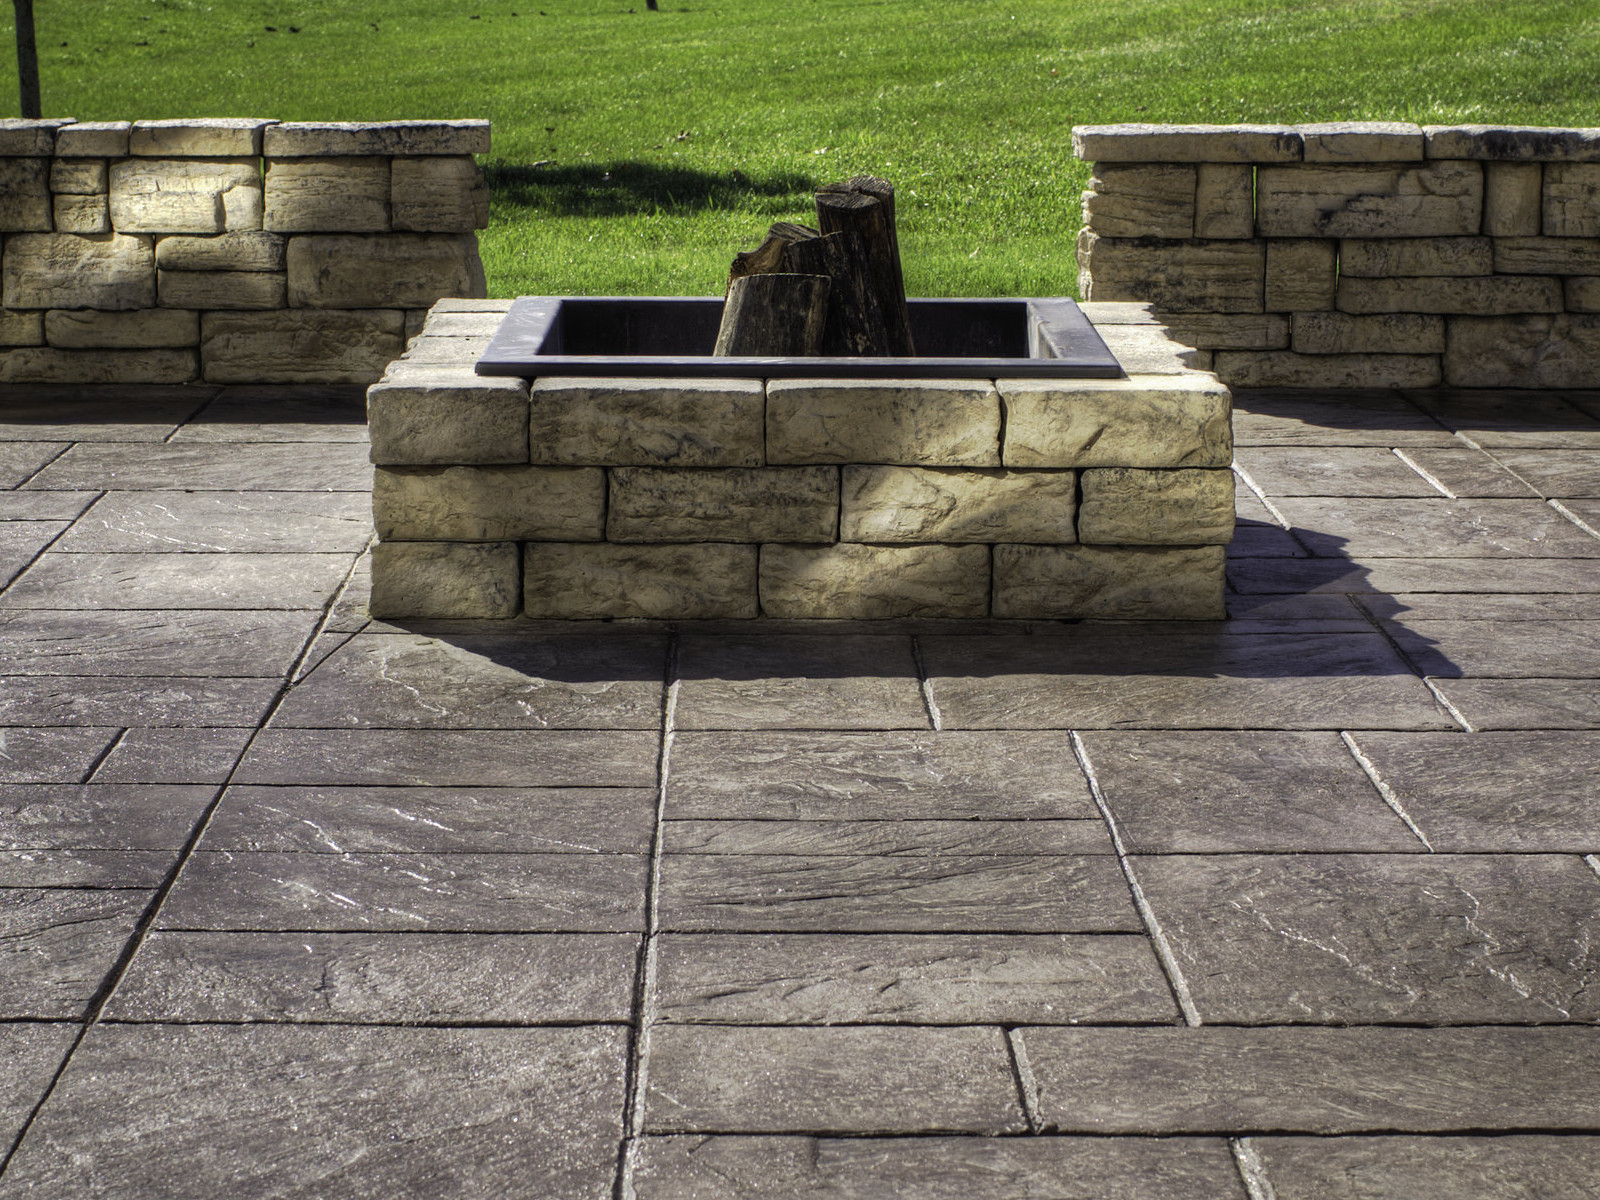 Stunning-Stamped-Concrete-Patio-with-Interesting-Flooring-and-Square-Firepit-near-Wide-Grass-Yard.jpg